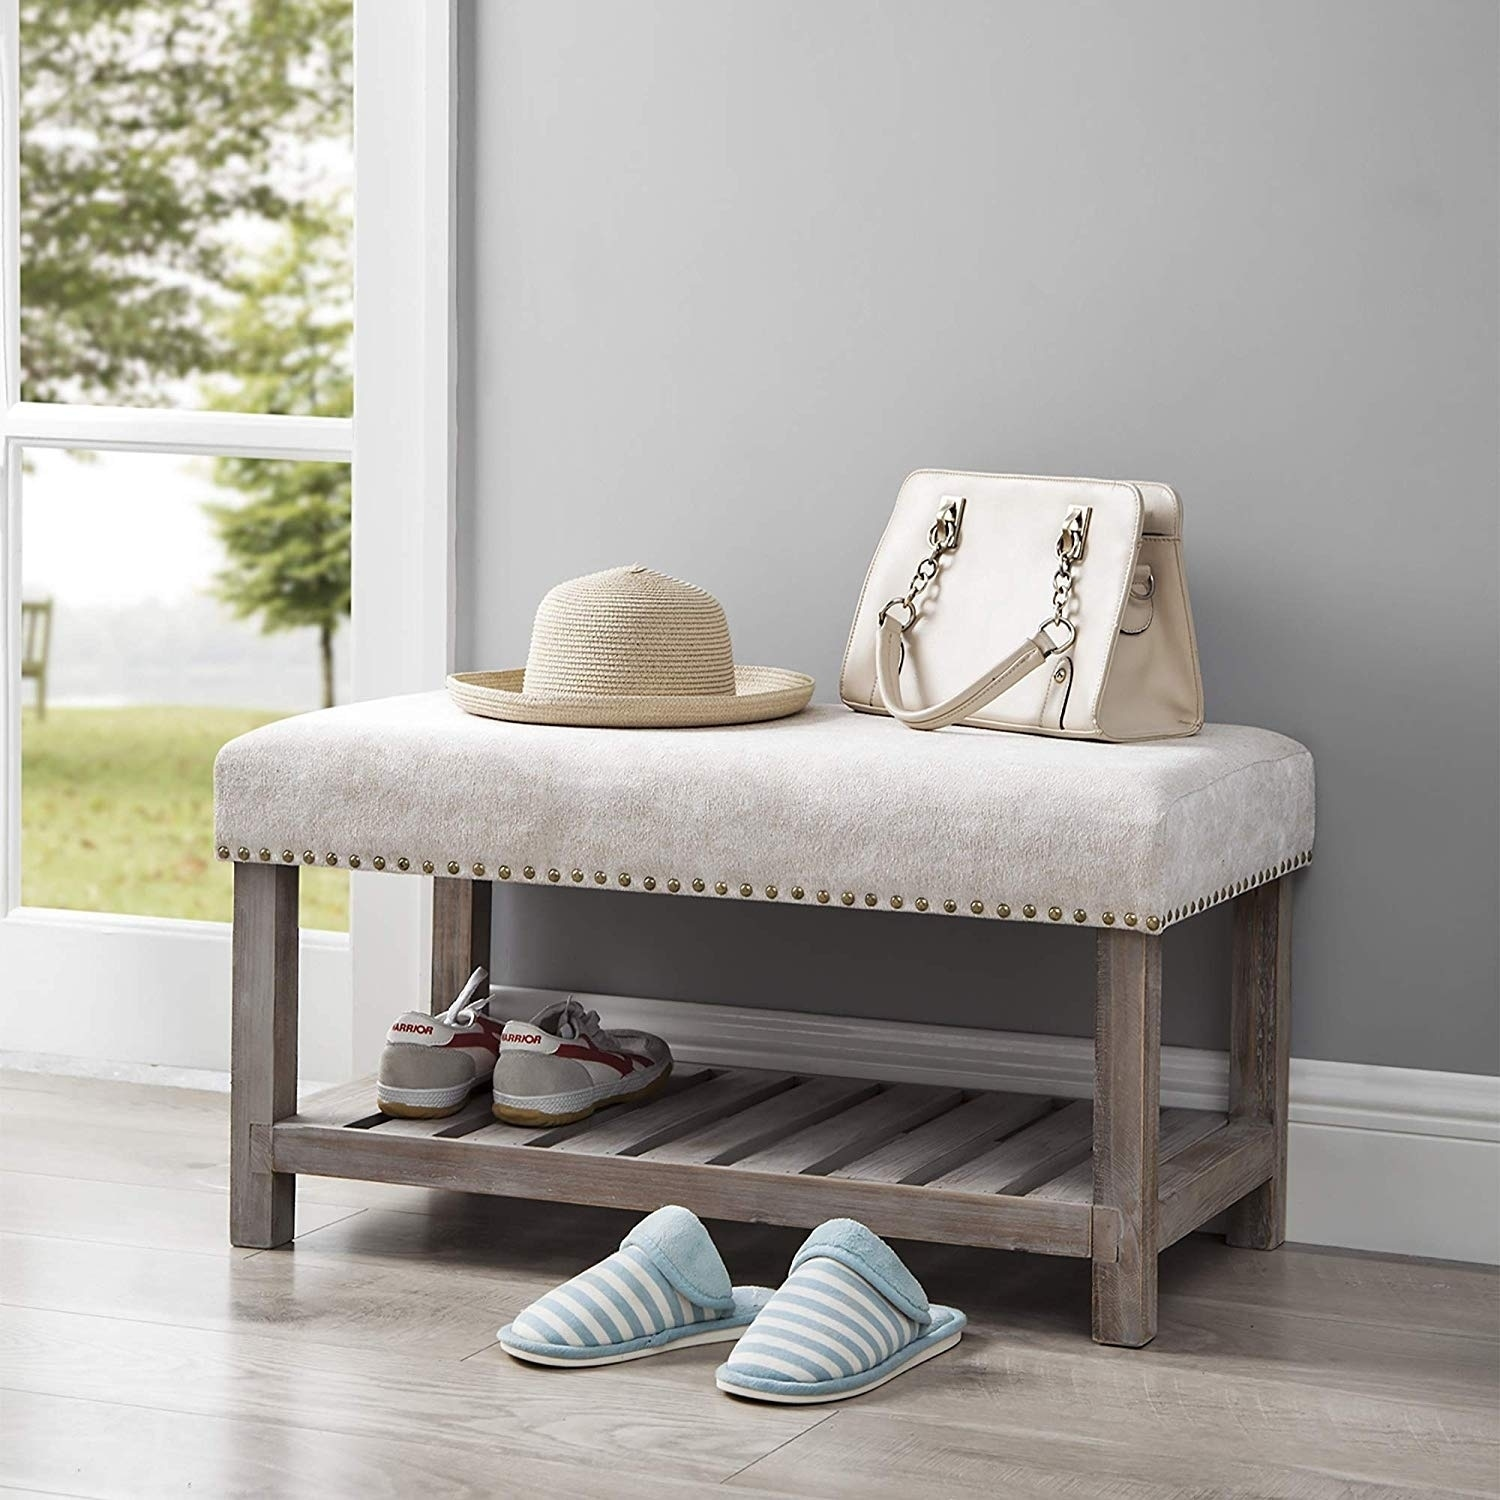 Central Style Cushion Bench Farmhouse Wood With Marble Natural Cushion Compact Overstock 27649473